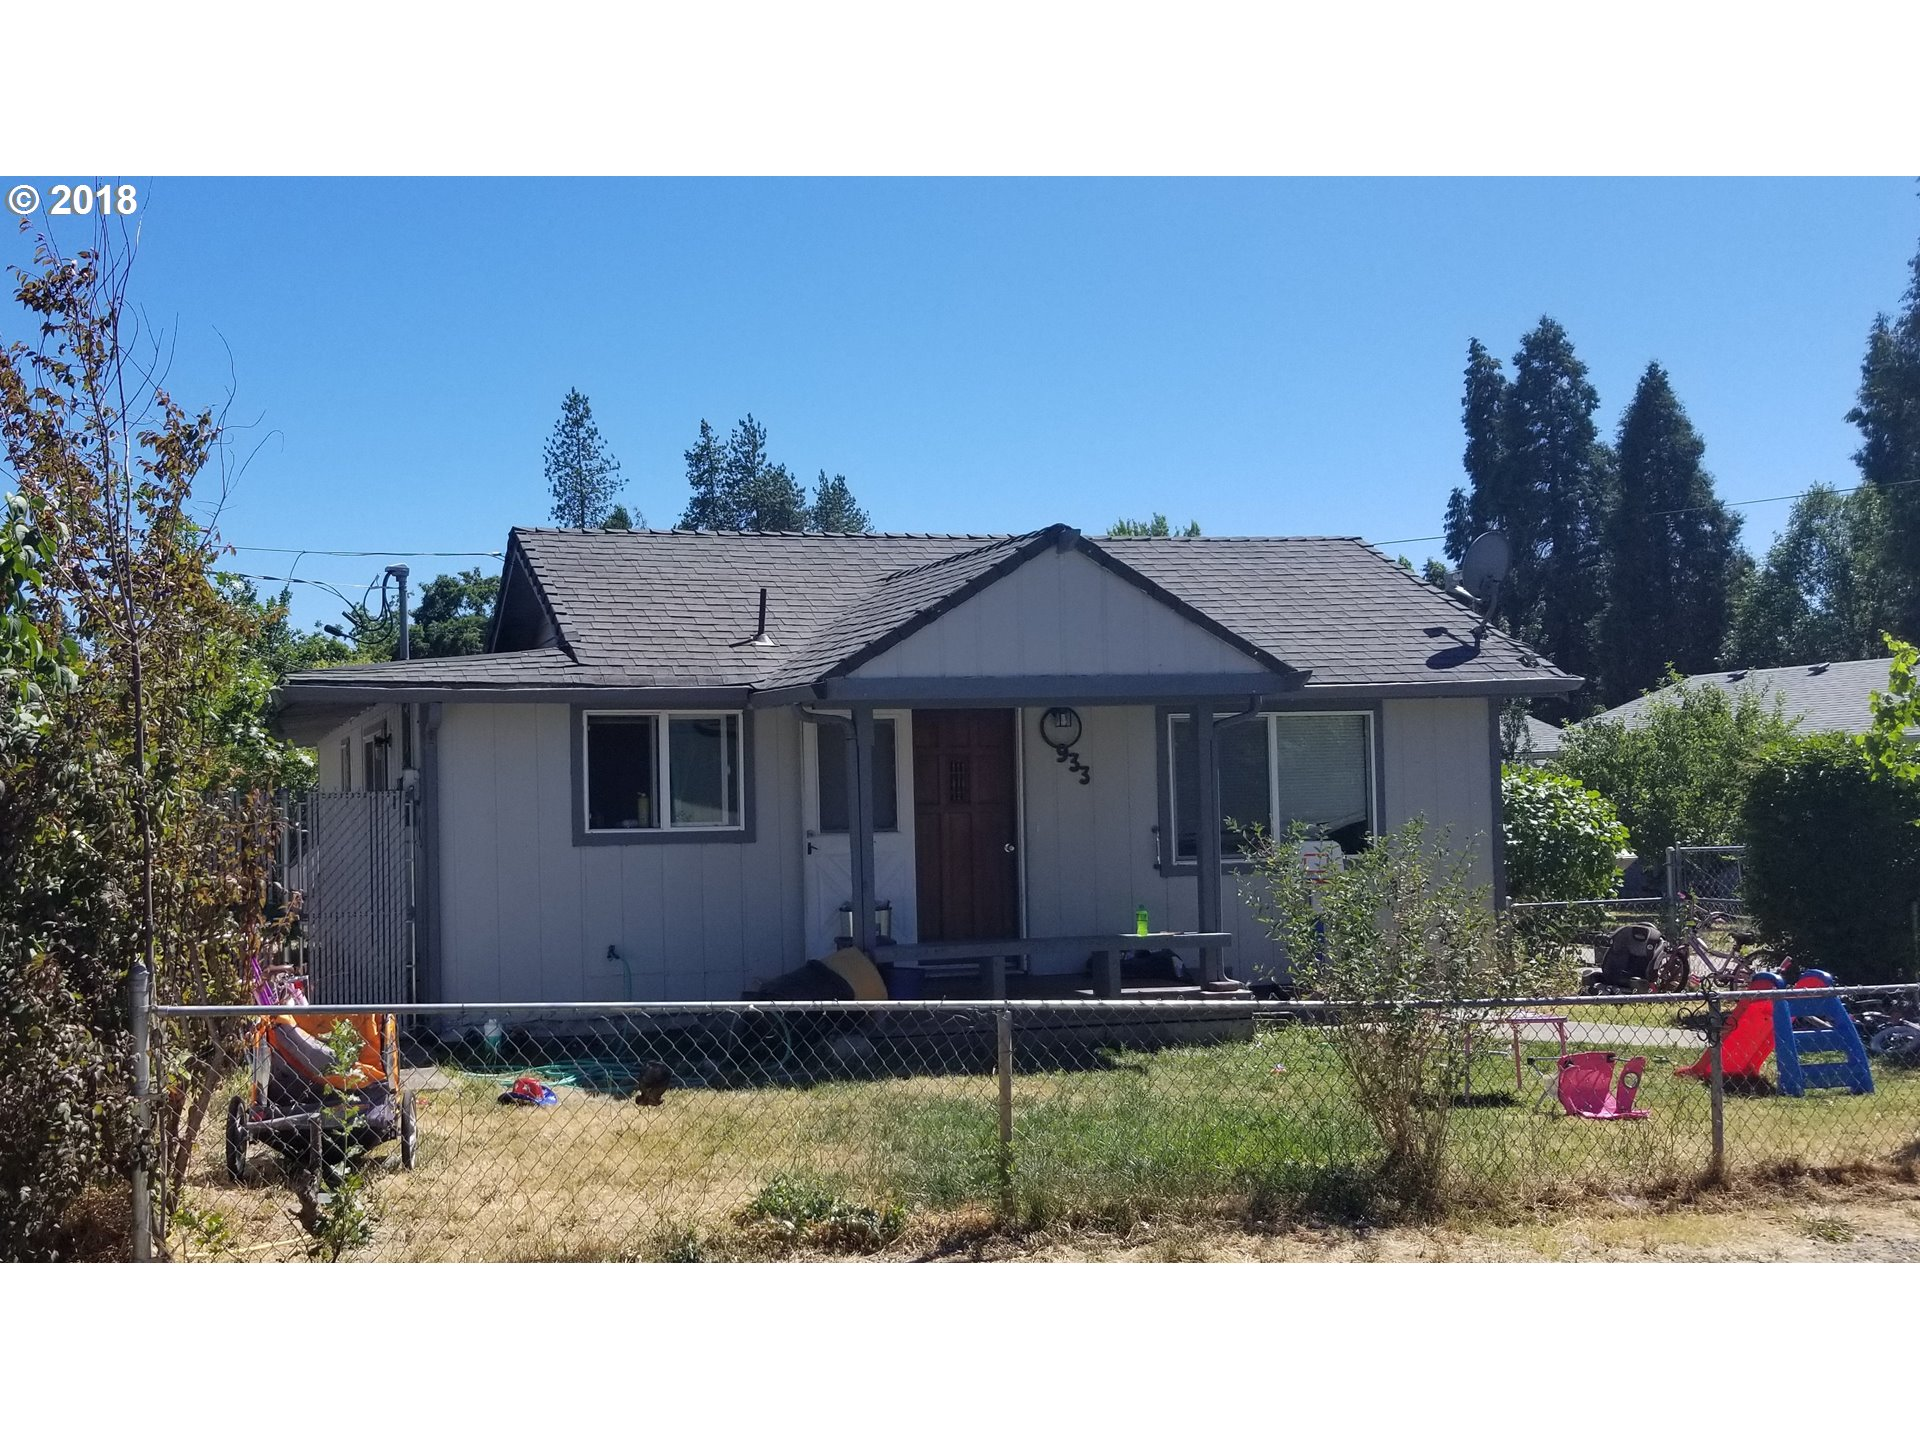 Grants Pass, OR 2 Bedroom Home For Sale